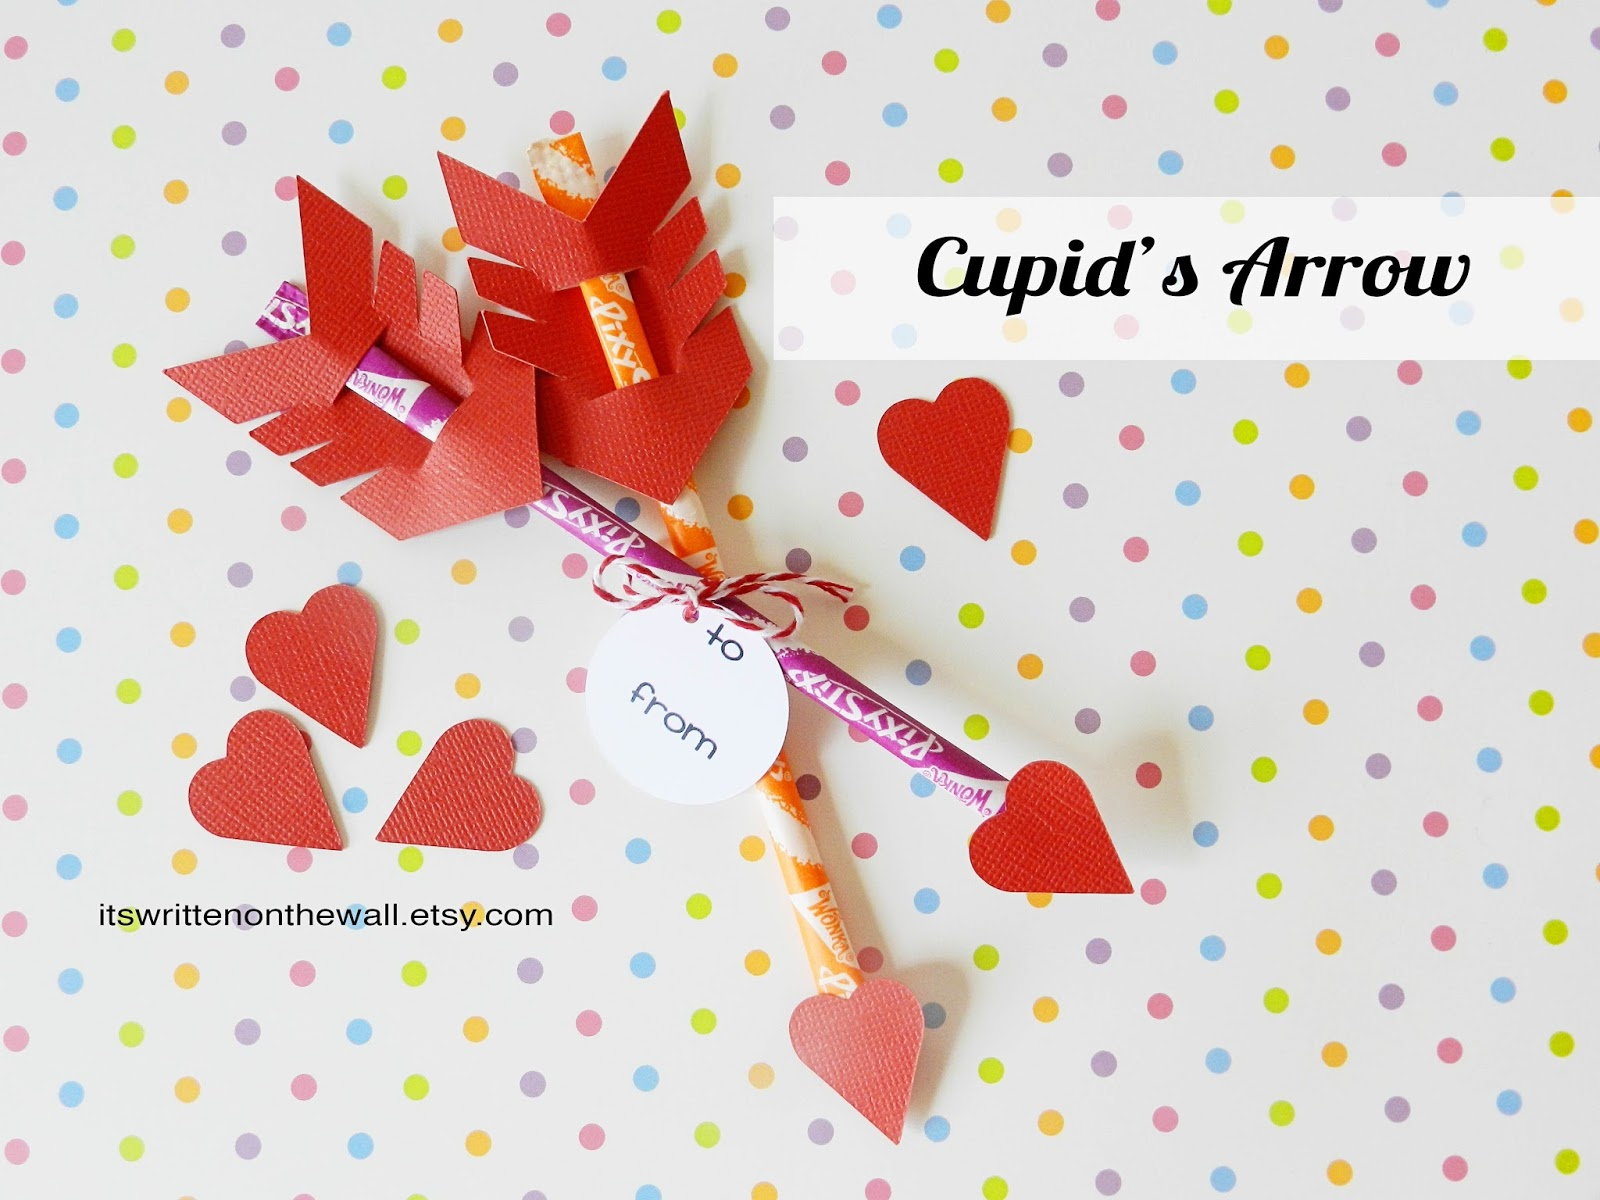 Been Racking Your Brain For A Unique Gift For The Kidu0027s To Take To School  On Valentineu0027s Day? Well, Hereu0027s Your Answer! Itu0027s A Cupidu0027s Arrow That Can  Be ...